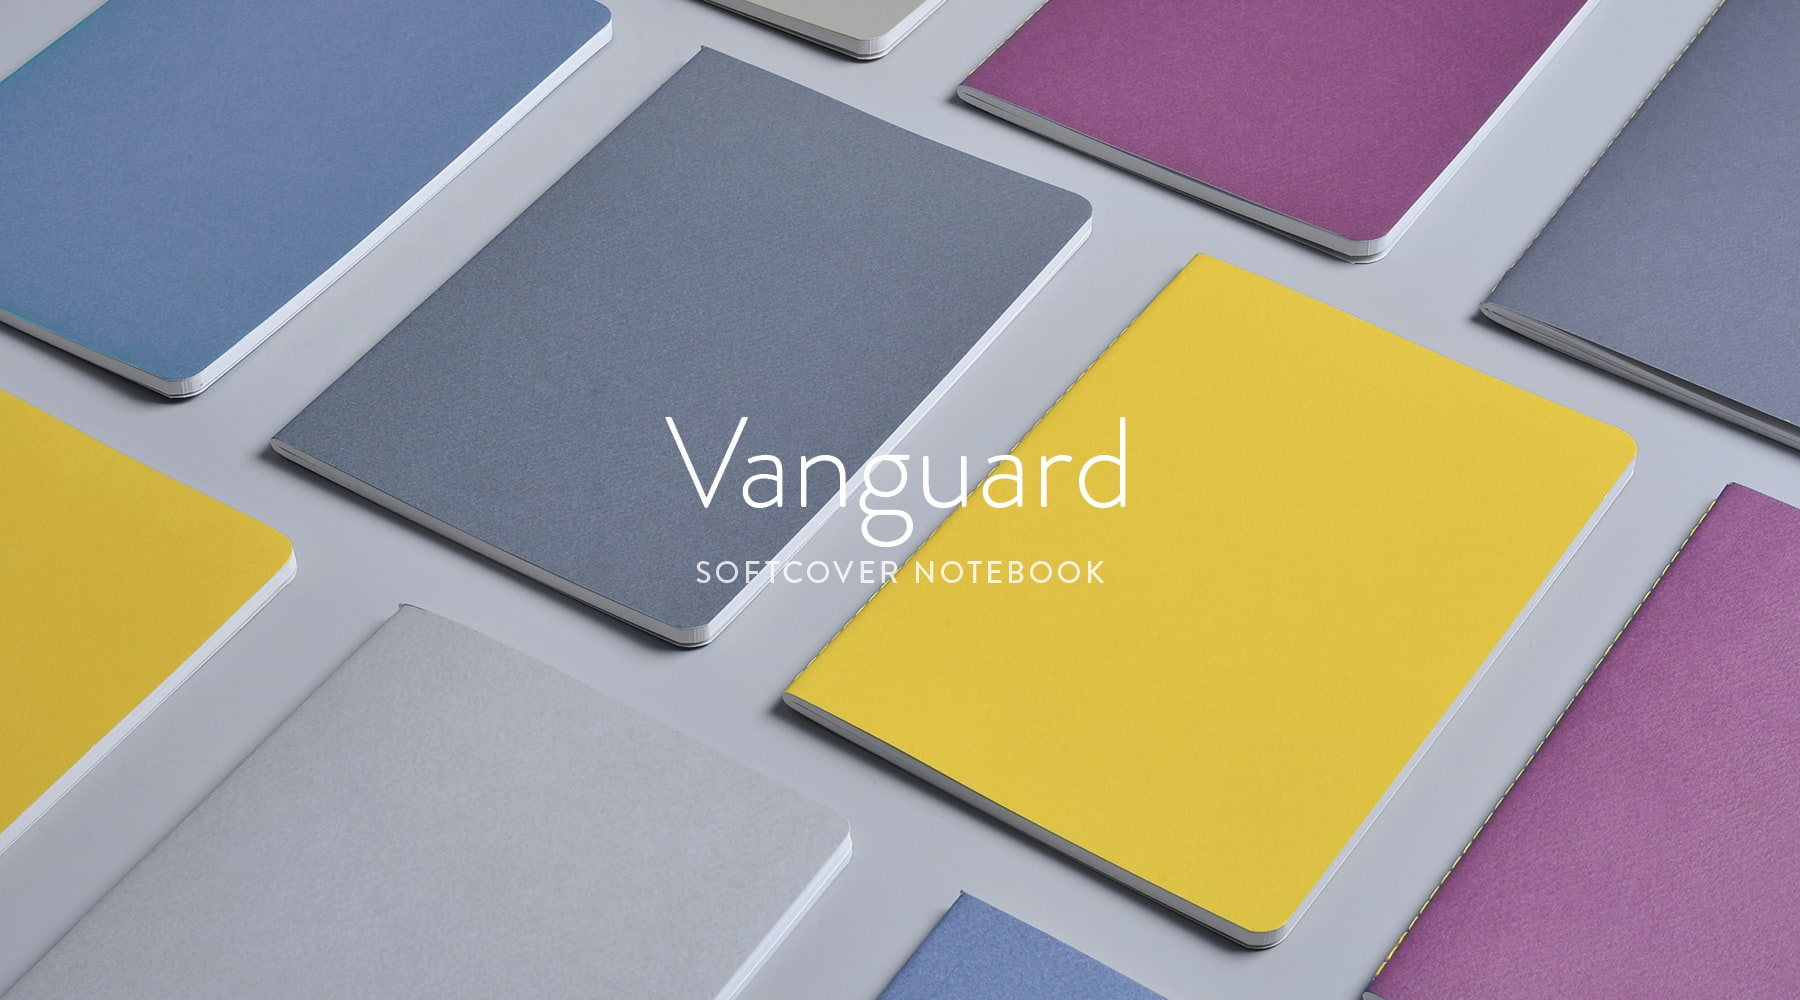 Vanguard notebooks in charcoal, light gray, fig wine, yellowgold and blue slate